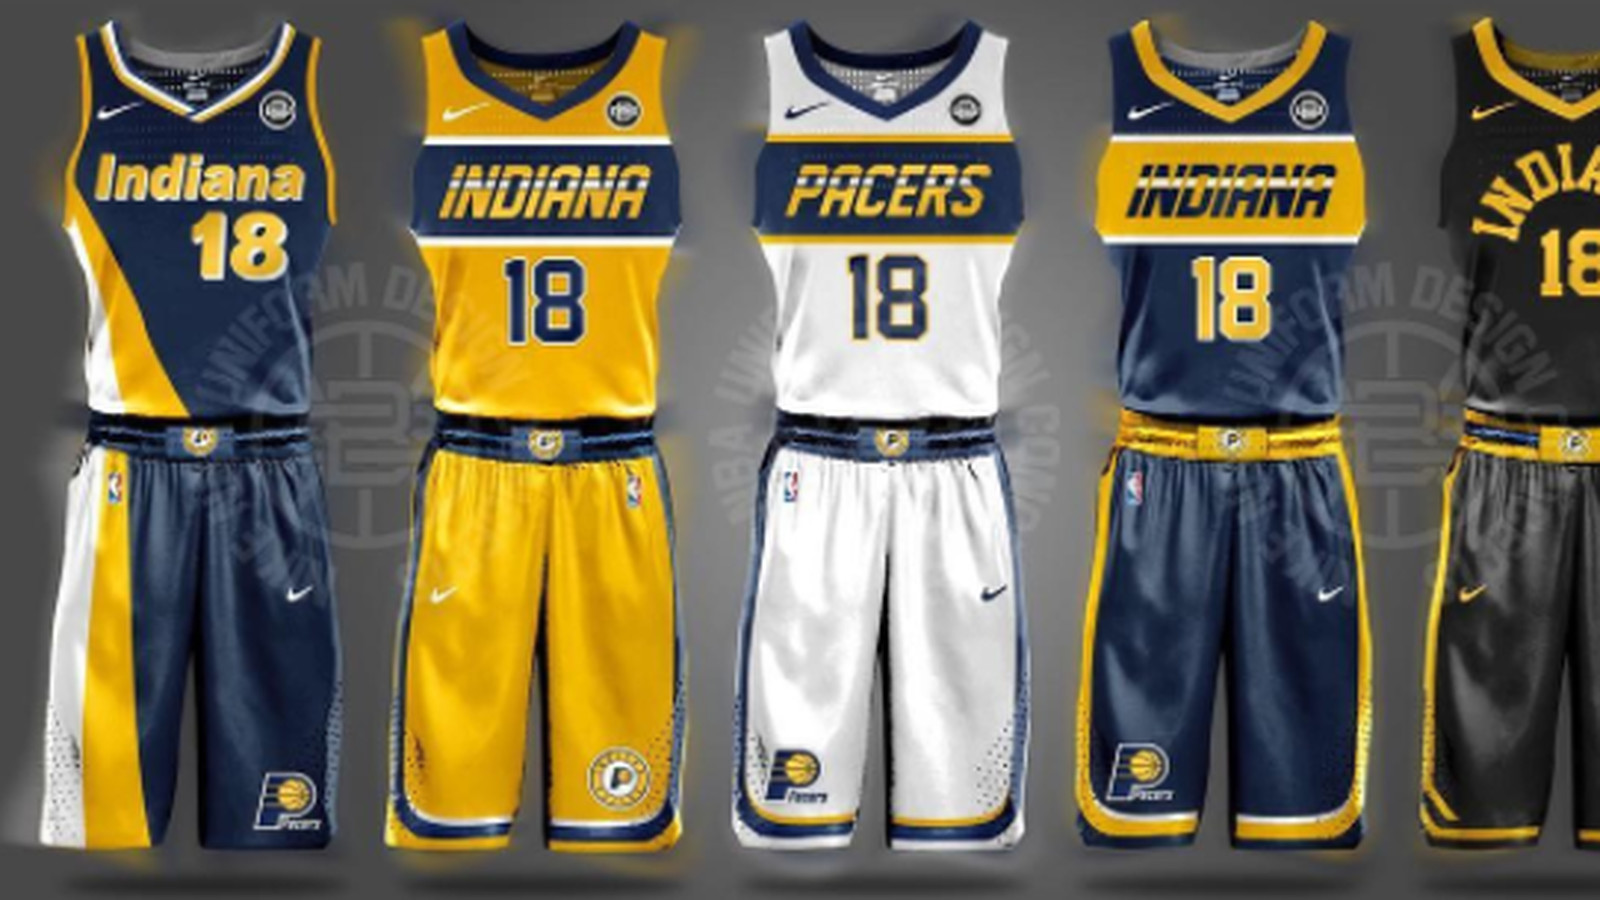 fb23ce51554 These fan-made NBA jerseys are so much better than the real ones -  SBNation.com